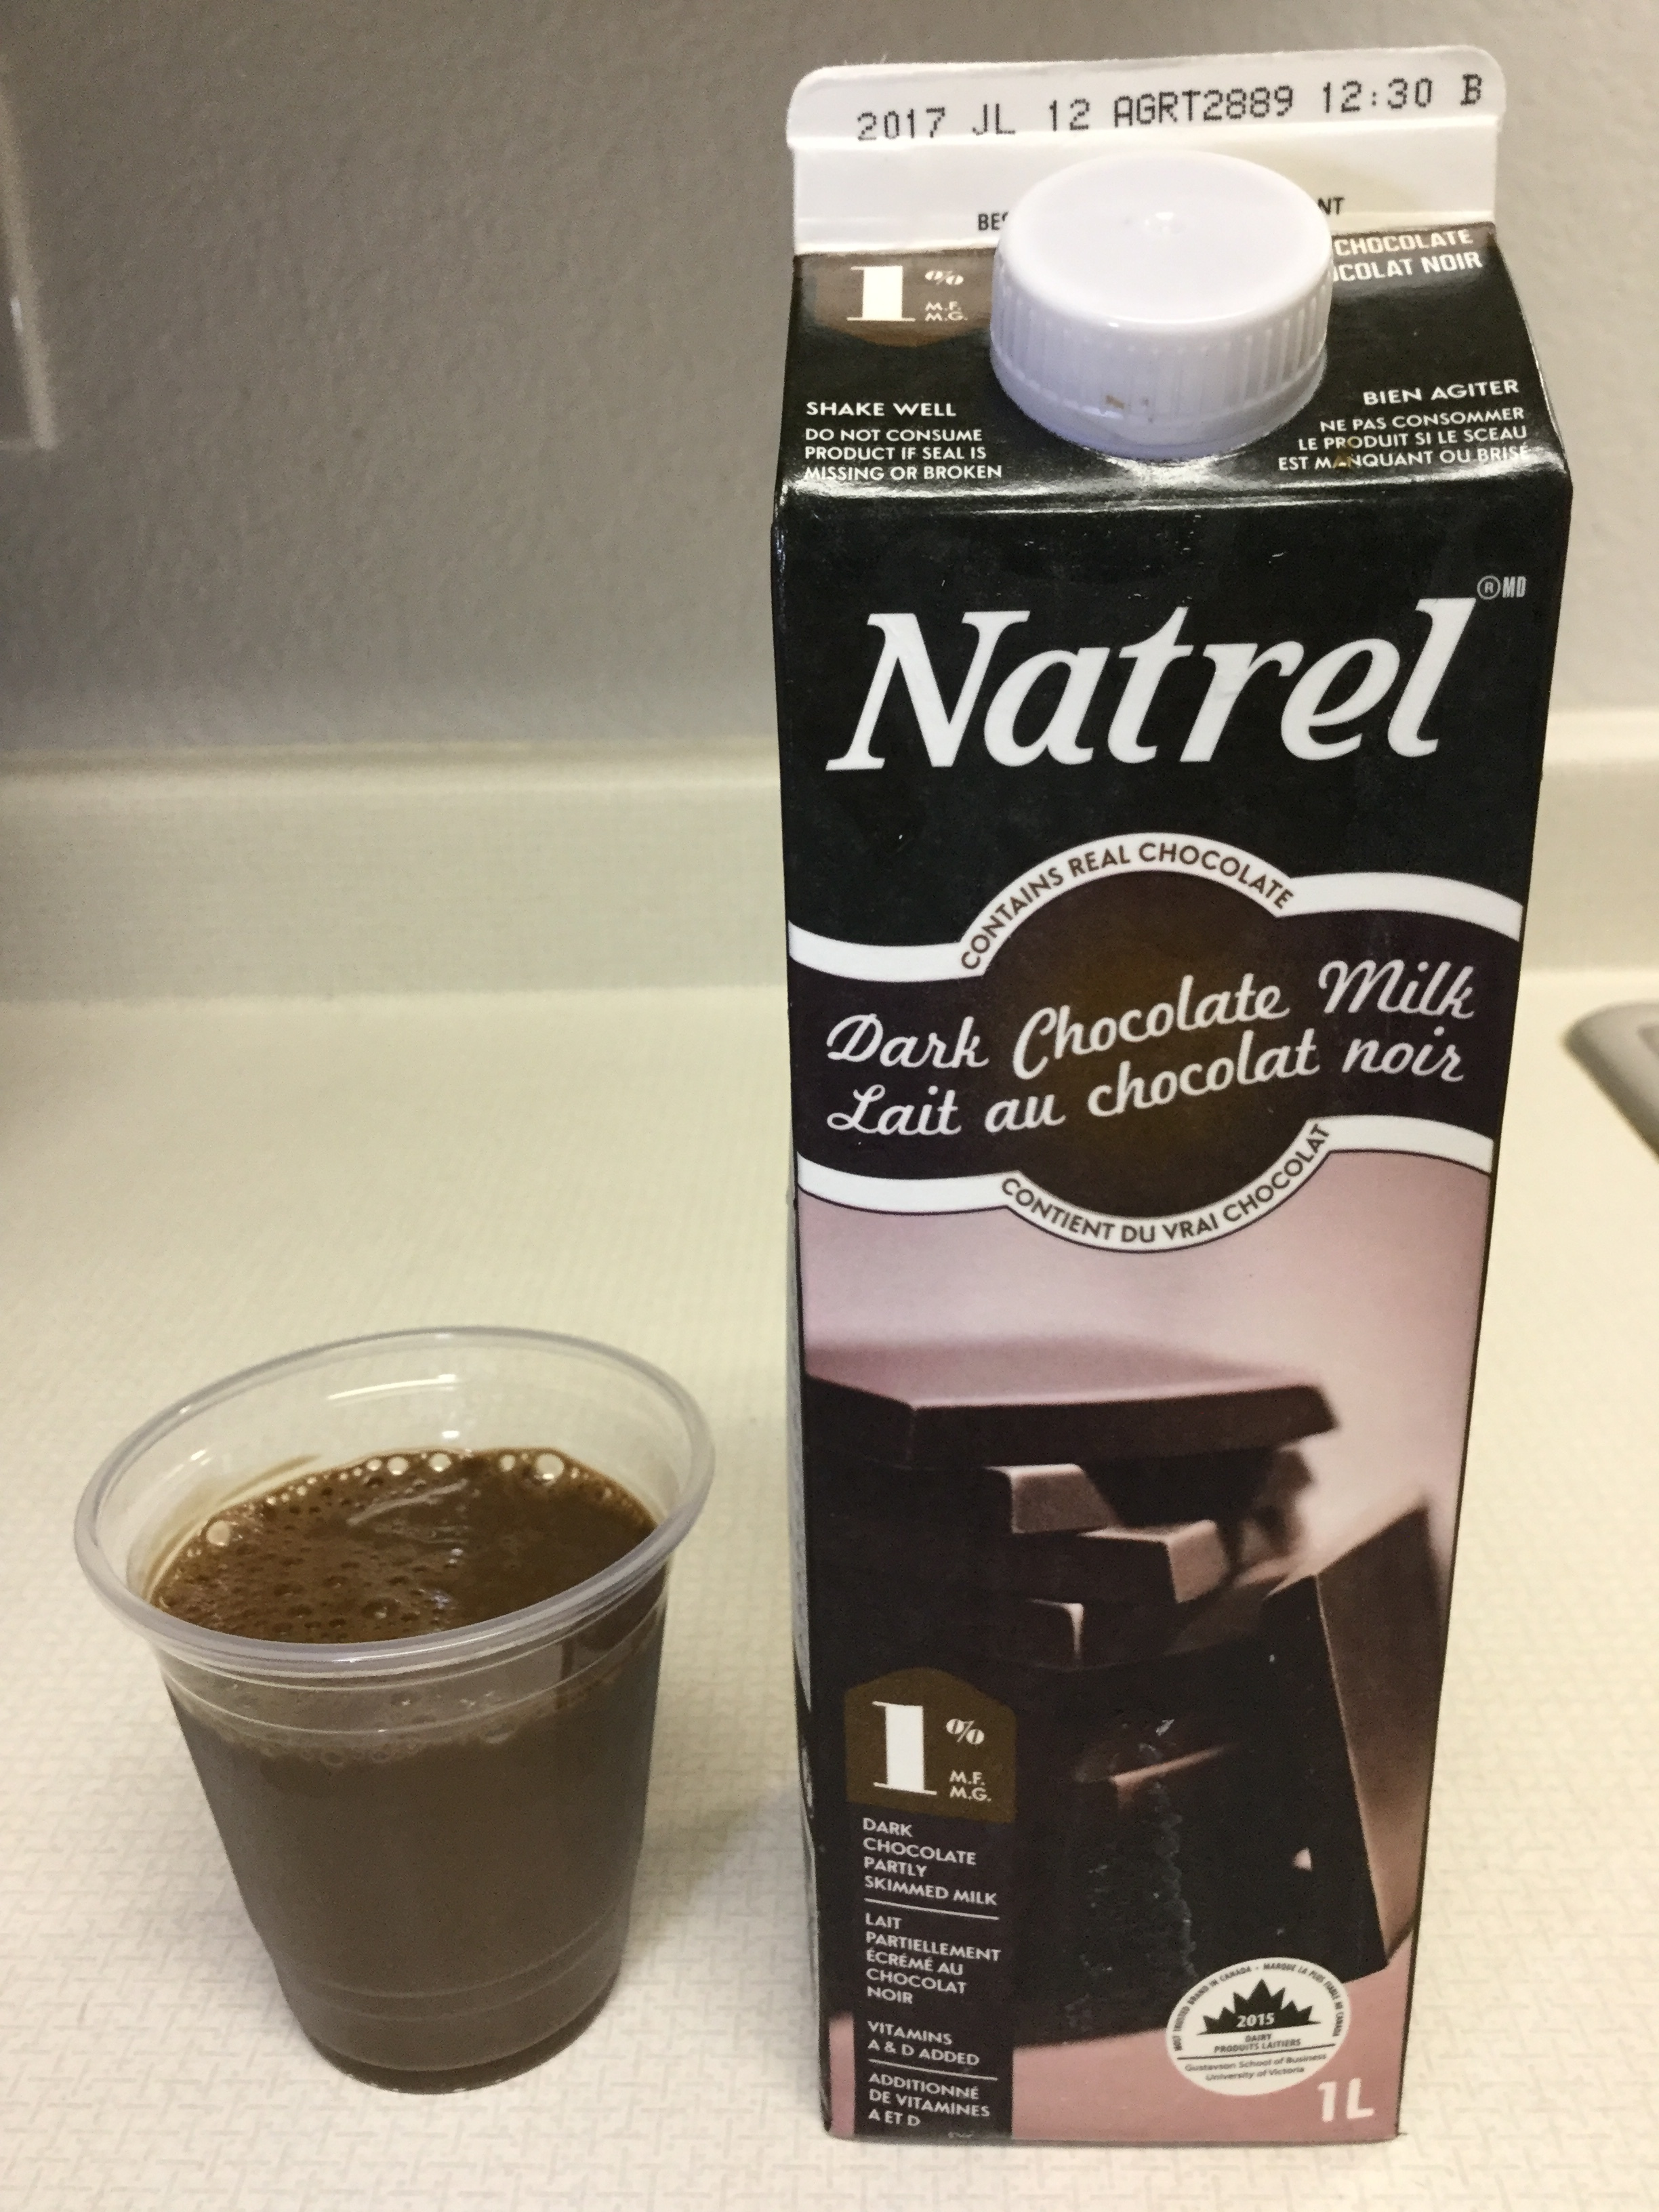 Natrel Dark Chocolate Milk Cup